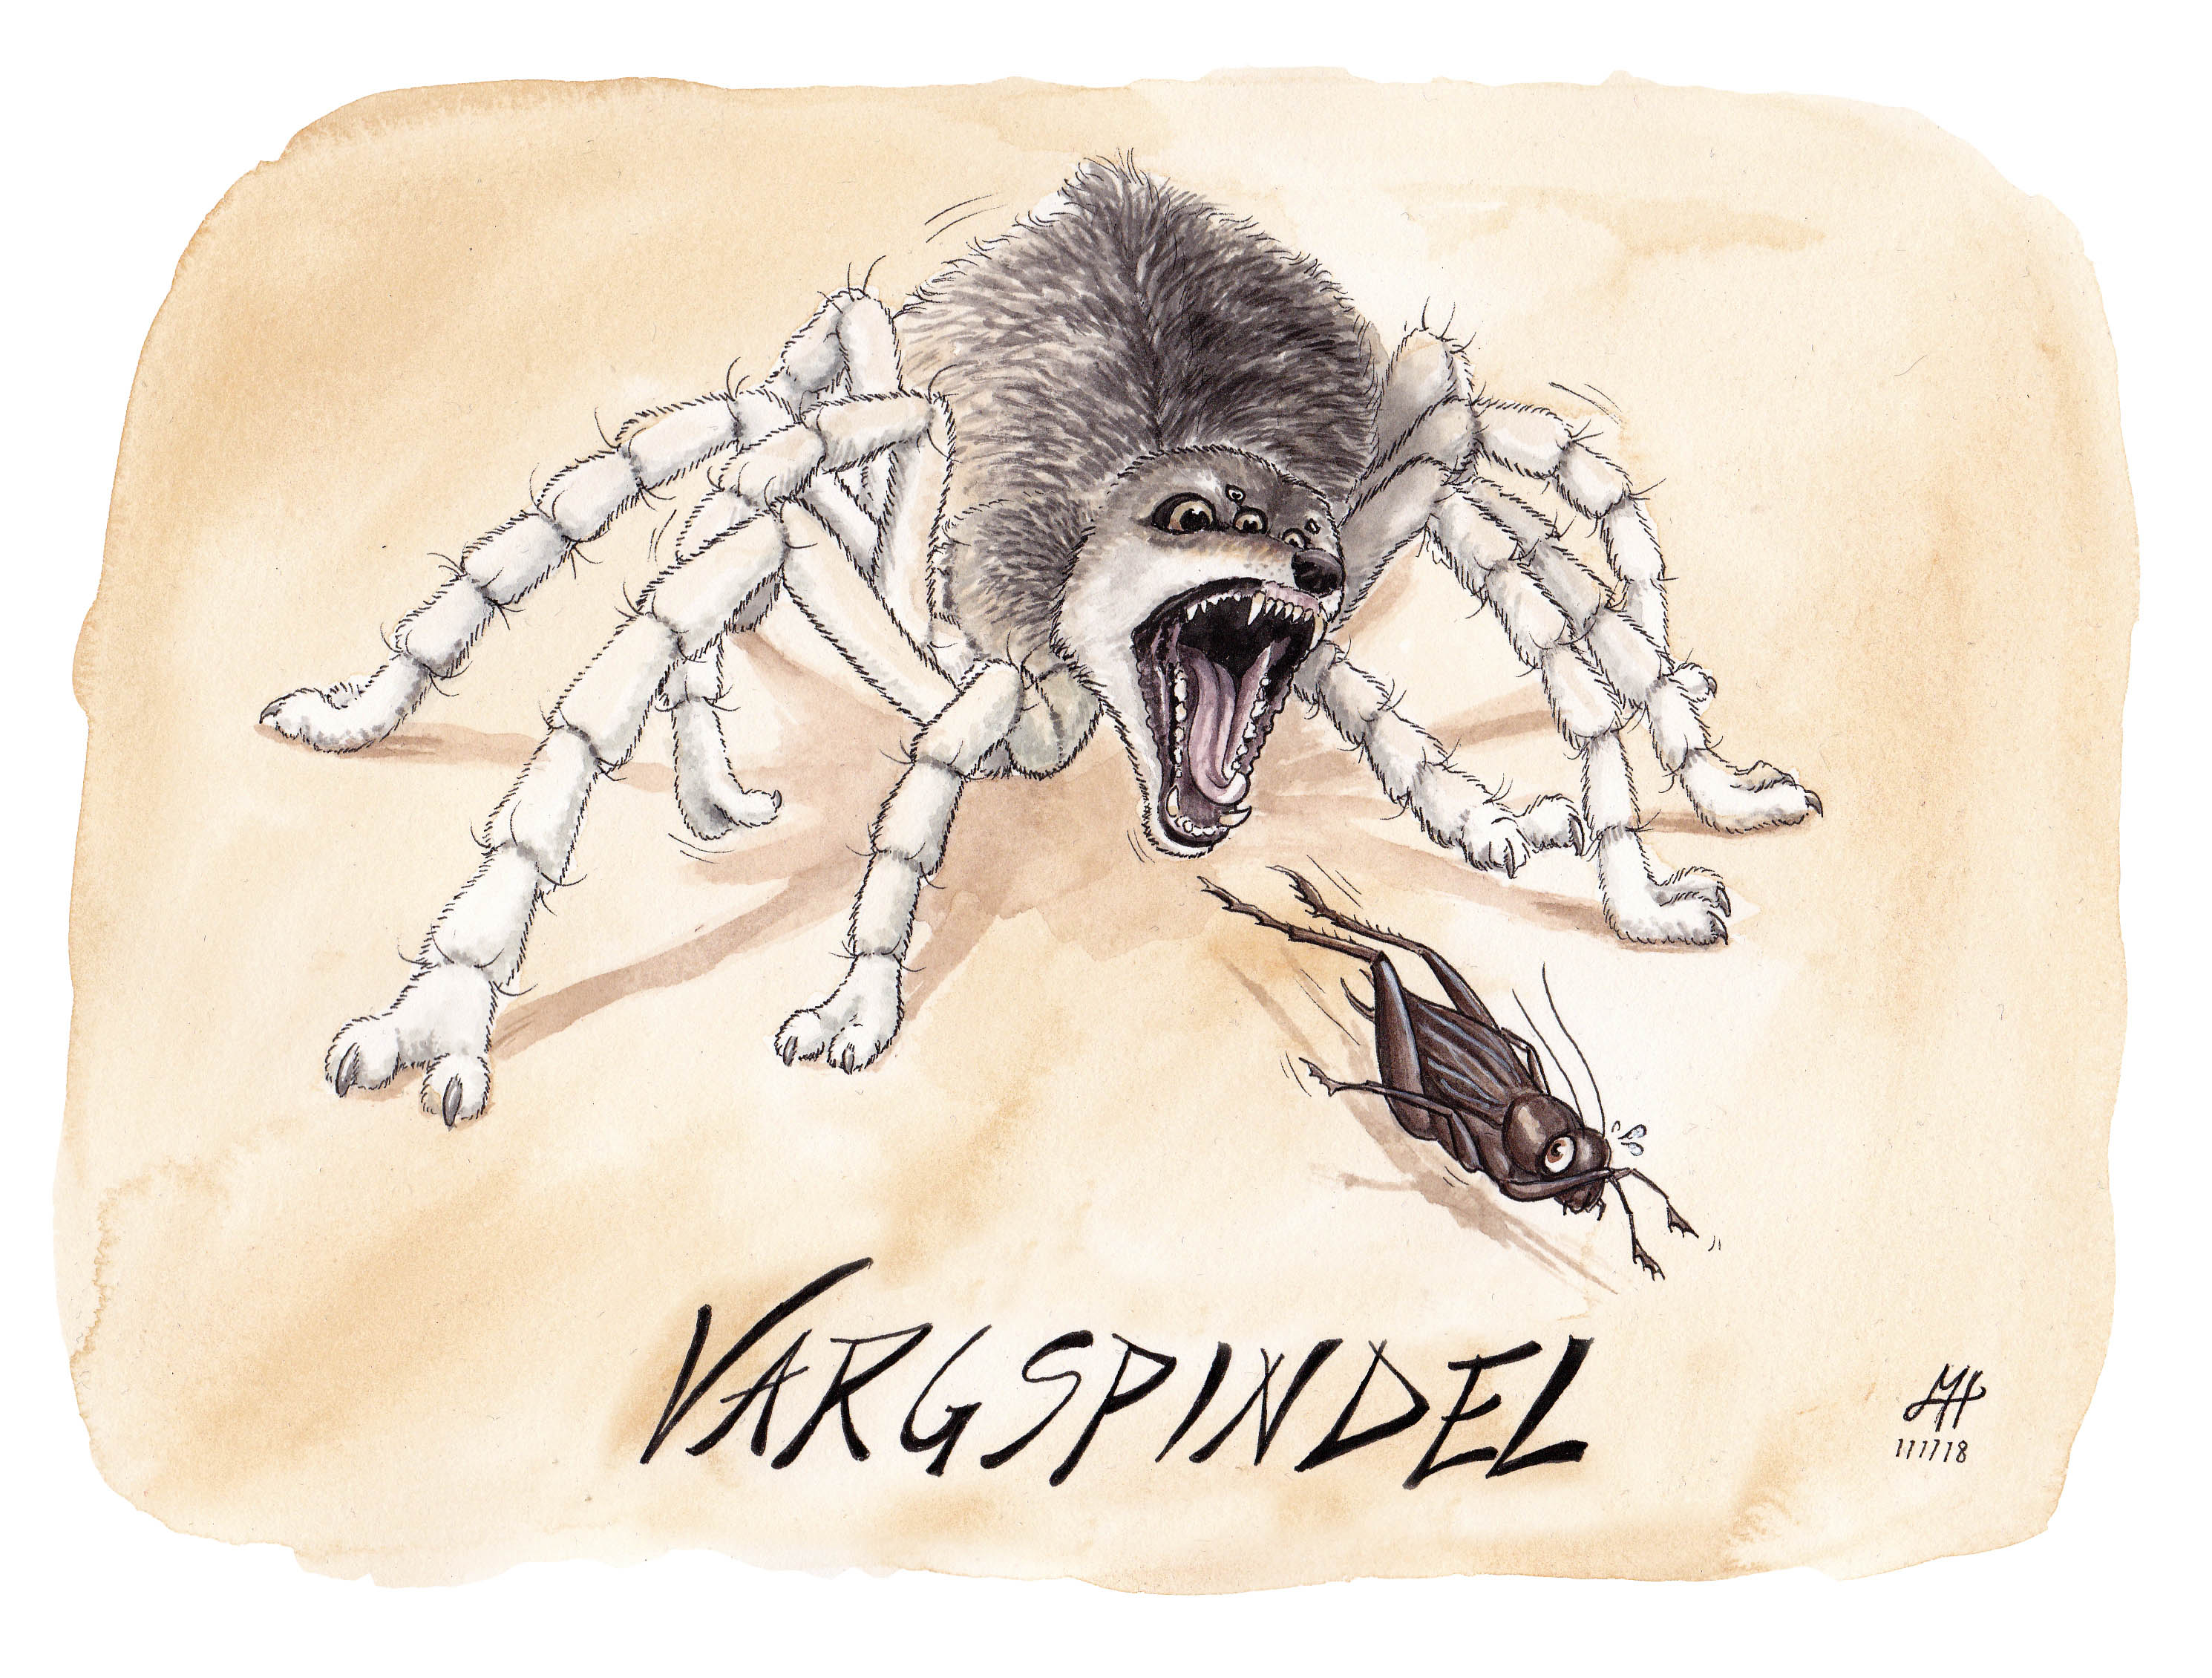 vargspindel illustration ordvits